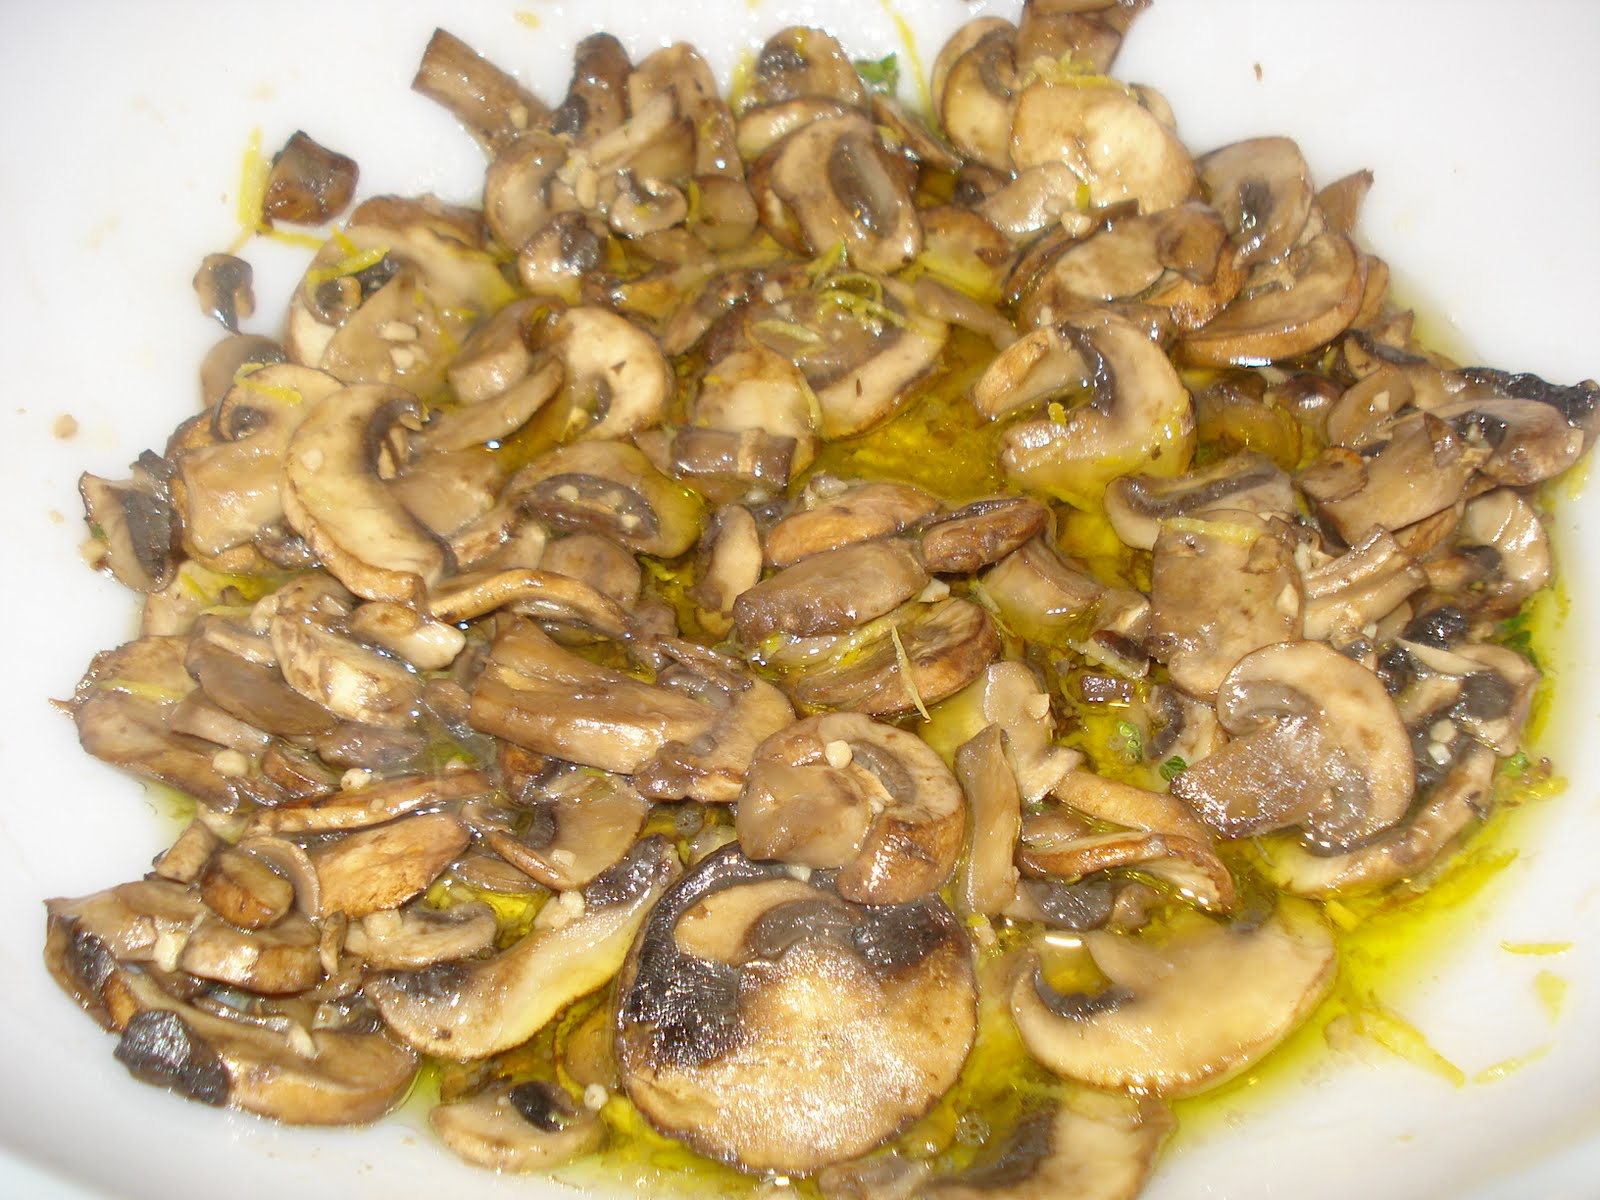 Mika's Pantry: Linguine with Lemon, Garlic and Thyme Mushrooms